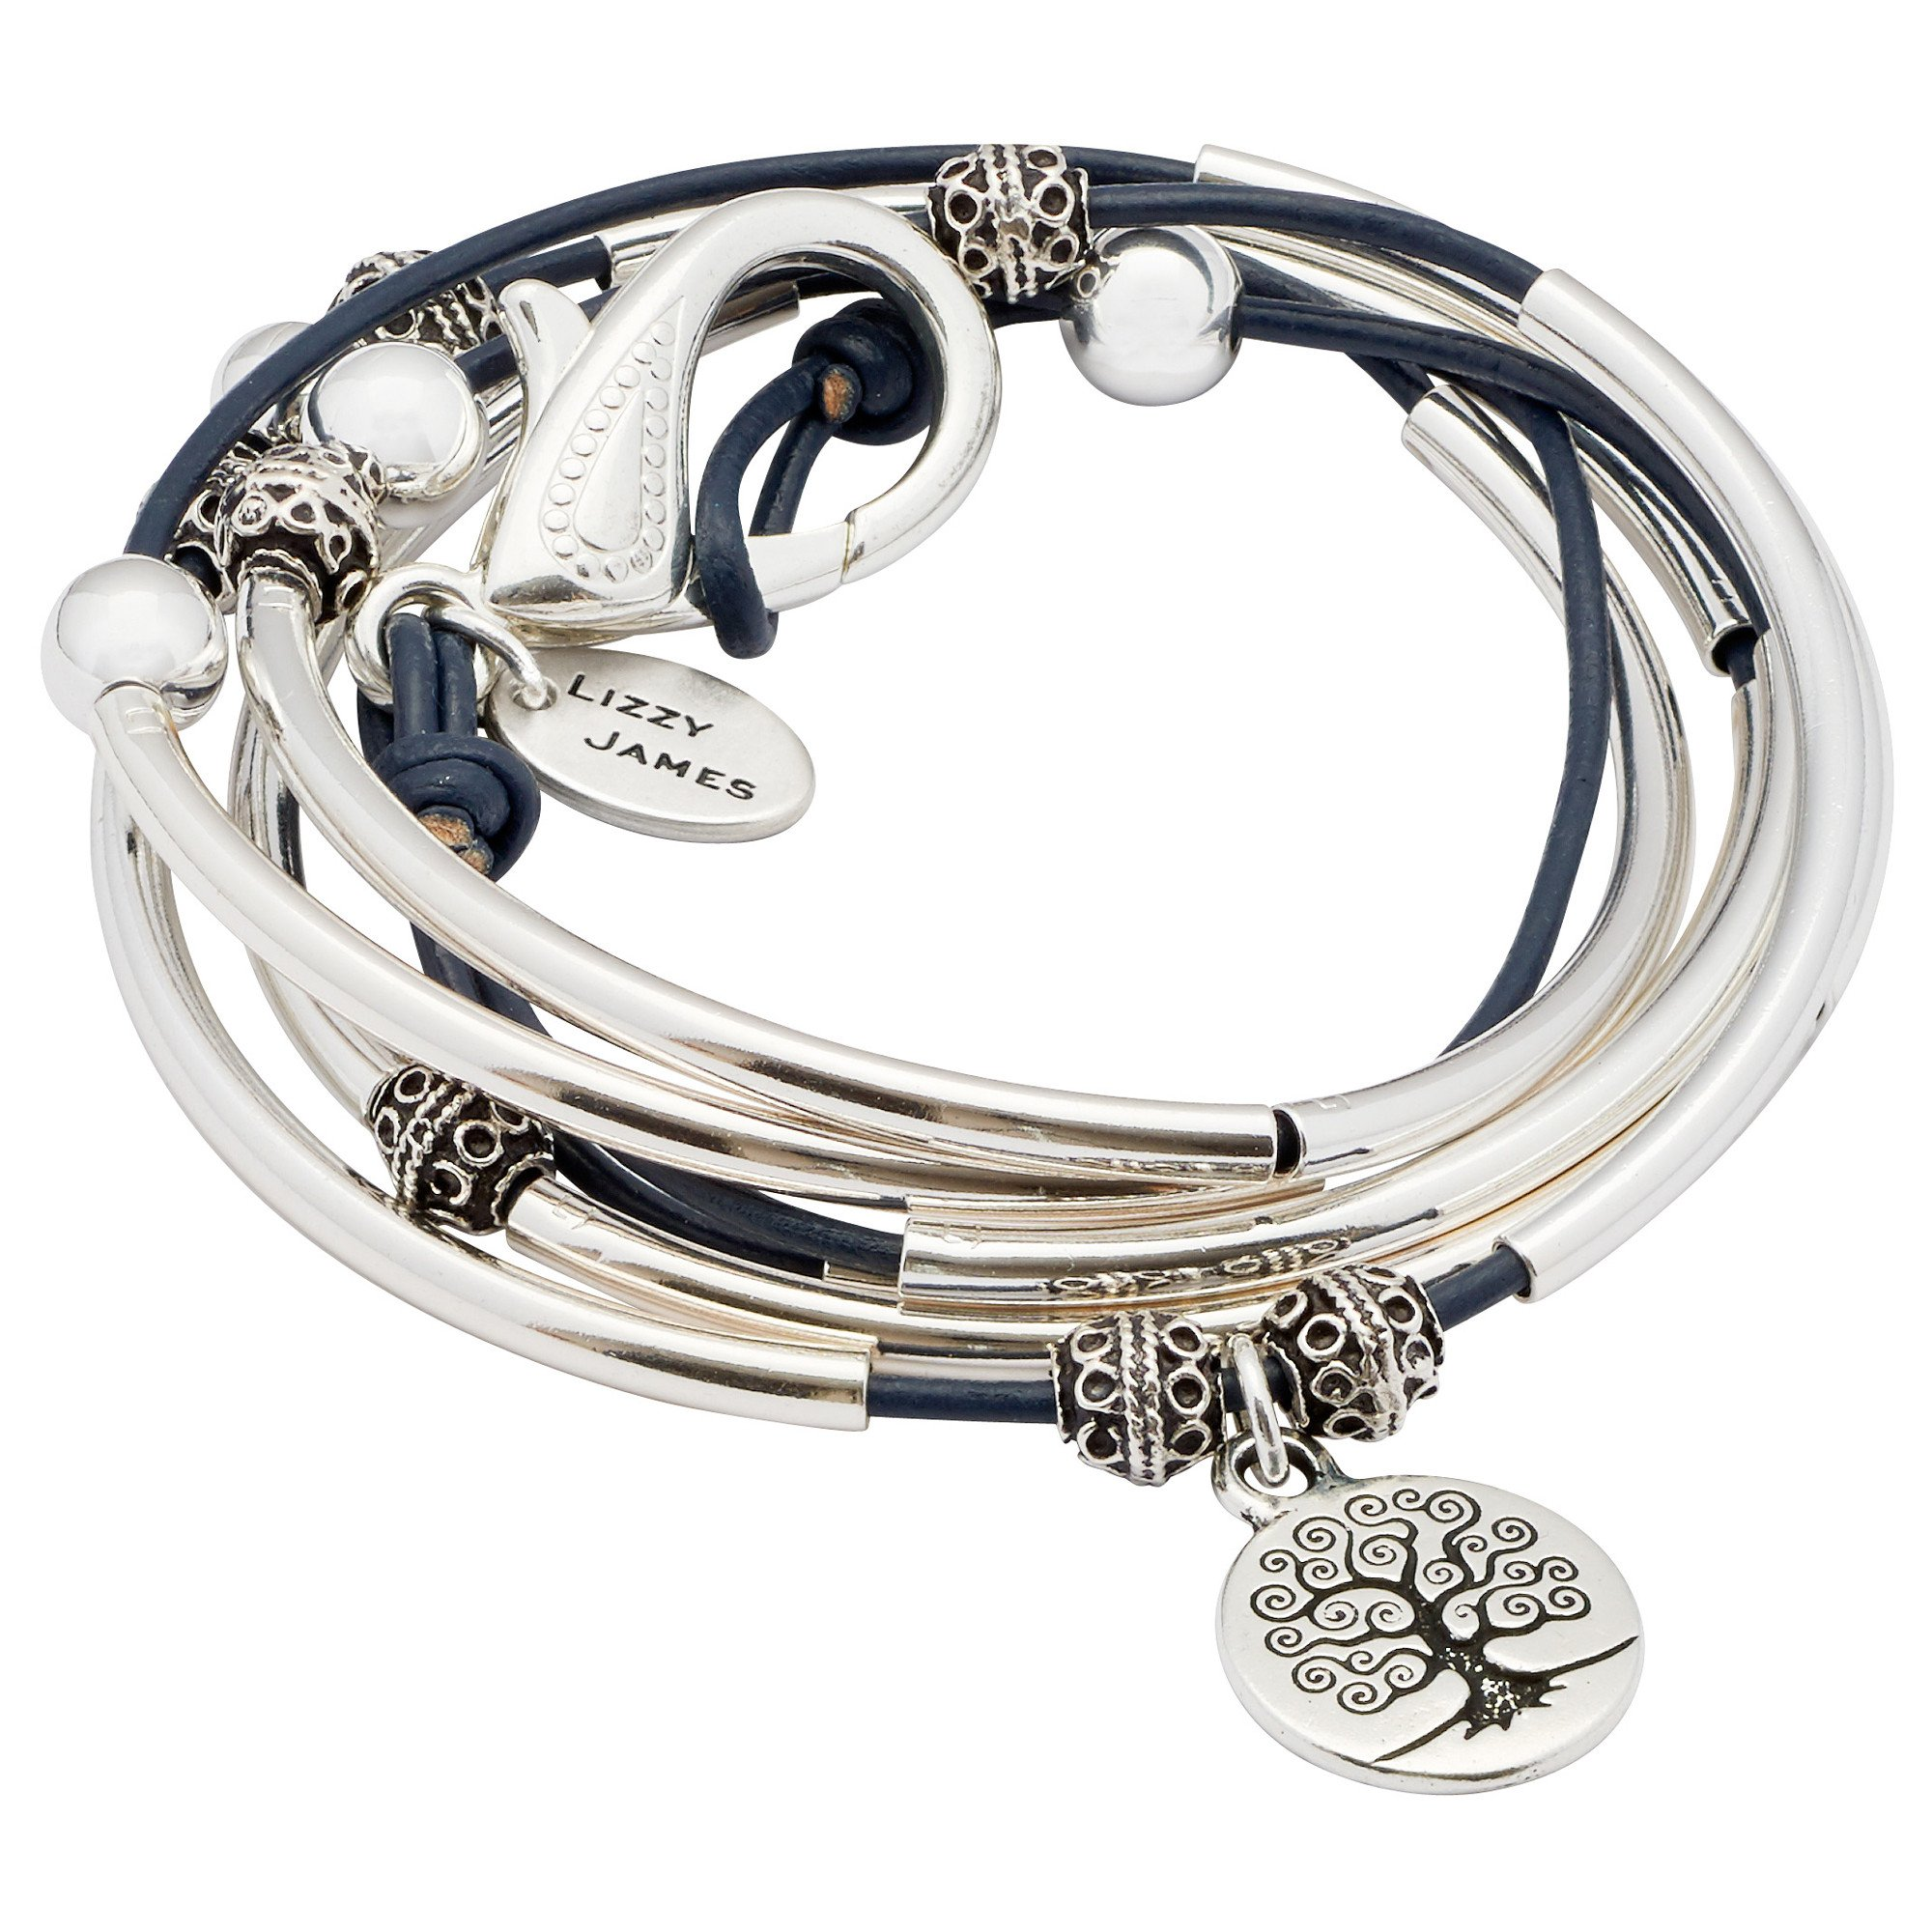 April with Tree of Life Charm Silverplate Medium Bracelet Necklace with Gloss Navy Leather Wrap by Lizzy James